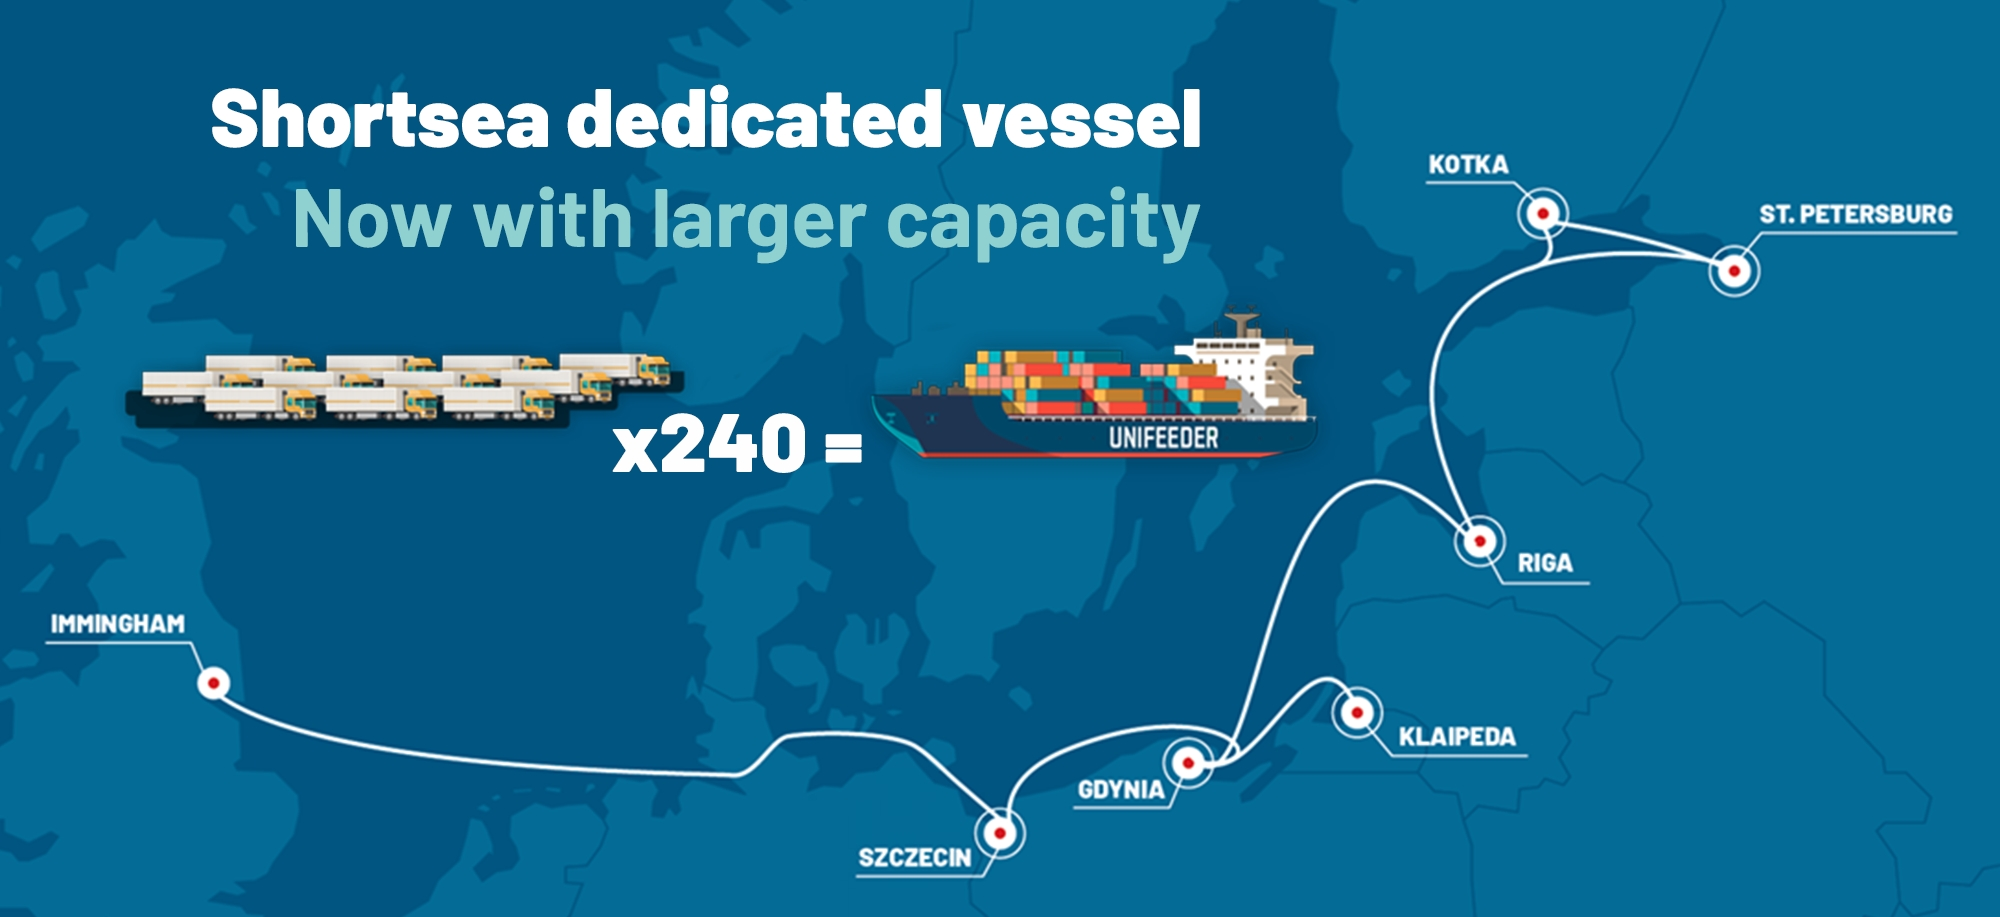 Unifeeder increases capacity between the Baltic and England